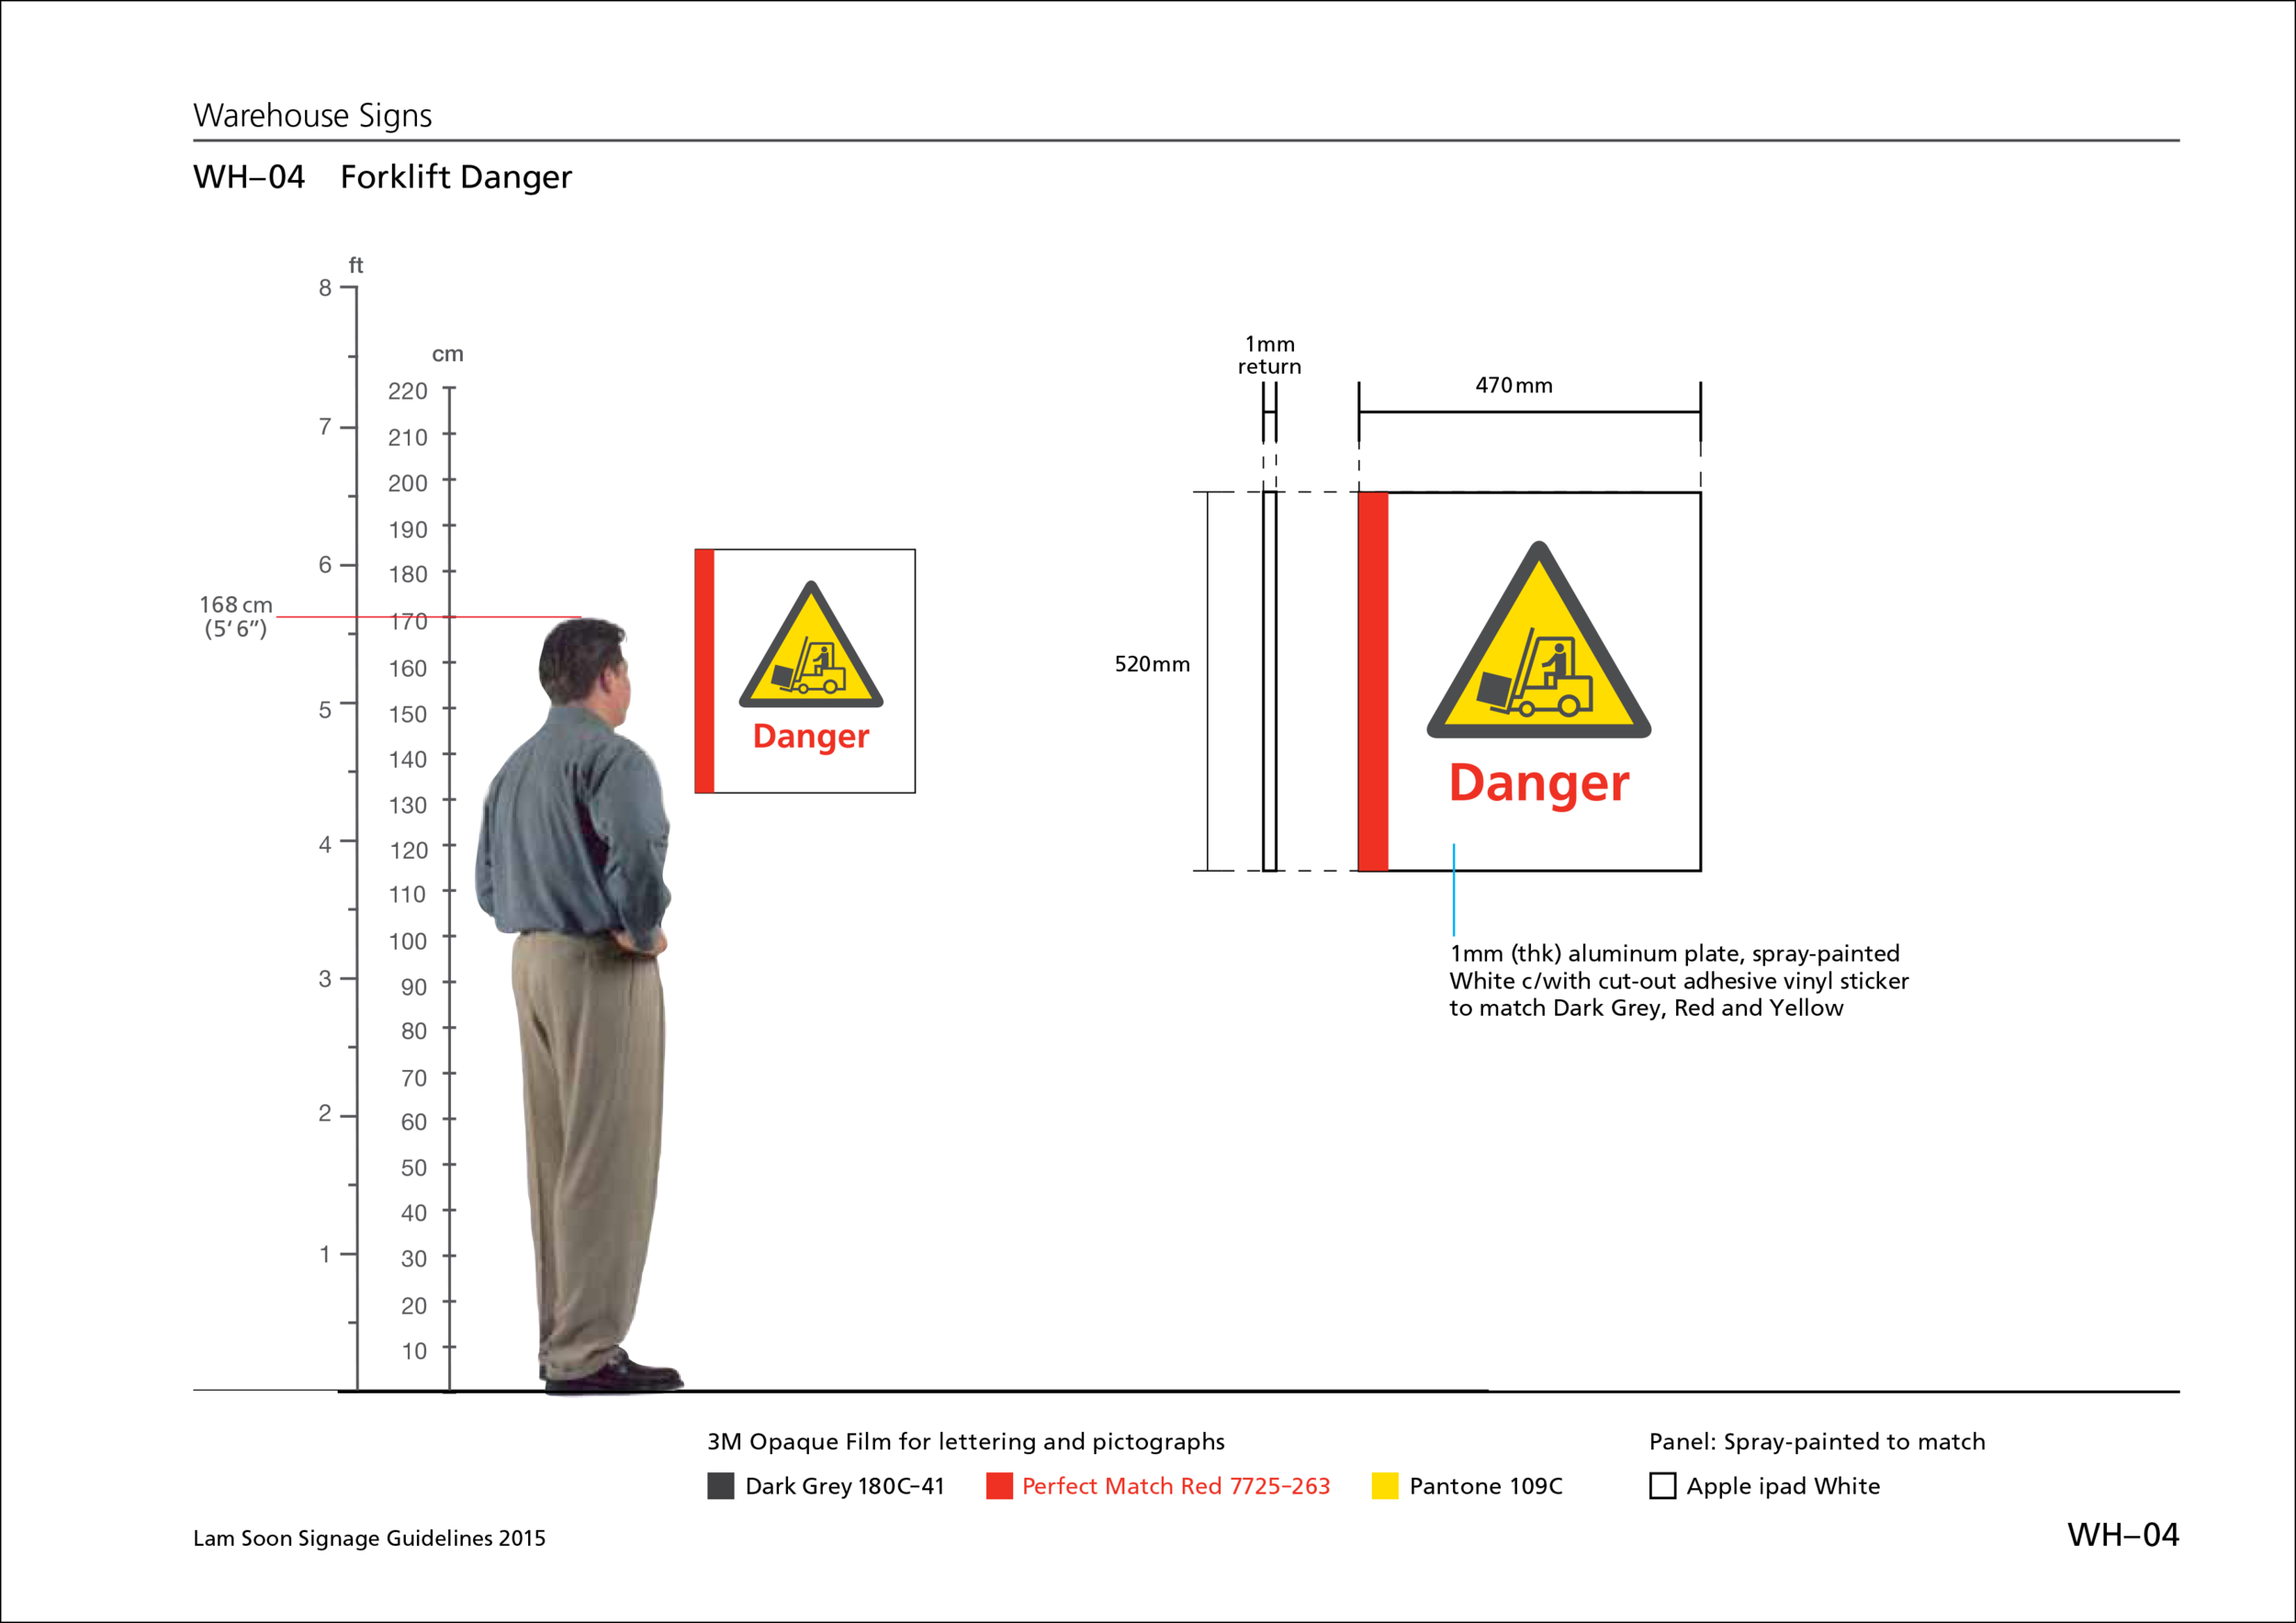 With various potential hazards at the warehouse, such as forklifts constantly traversing along the aisles,workers' safety was a priority that had to be addressed with well-placed caution signs and floor markings.